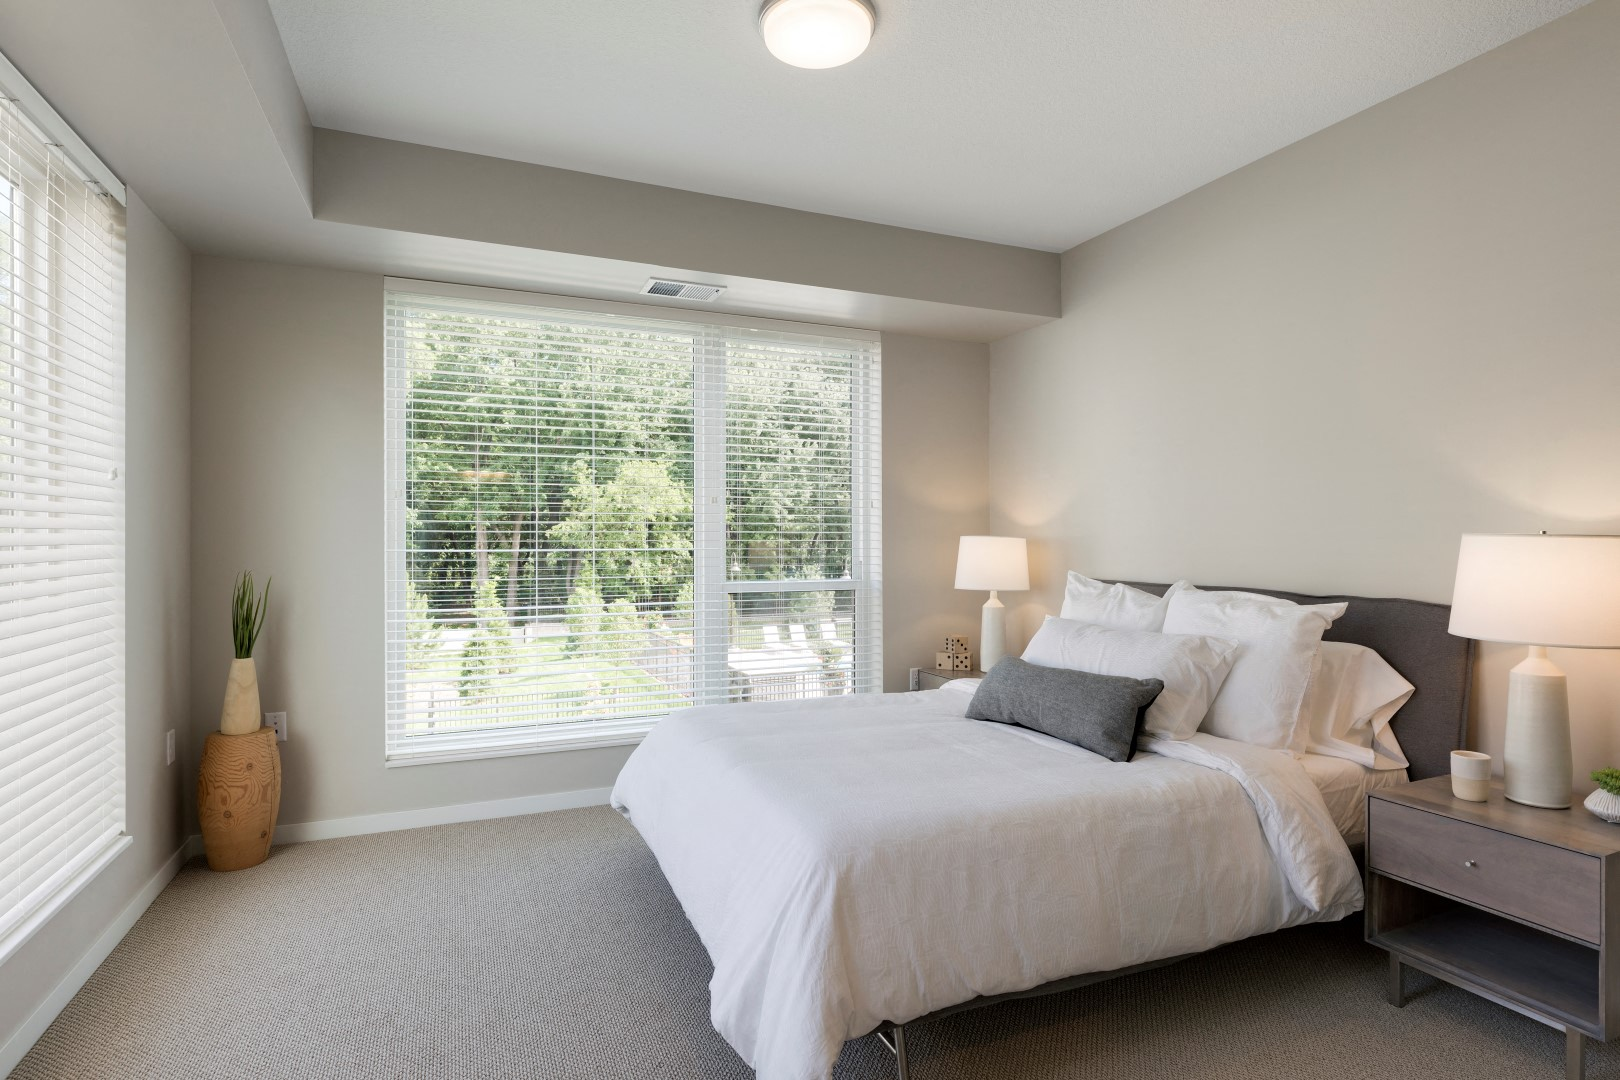 The McMillan Shoreview Model 201 Bedroom